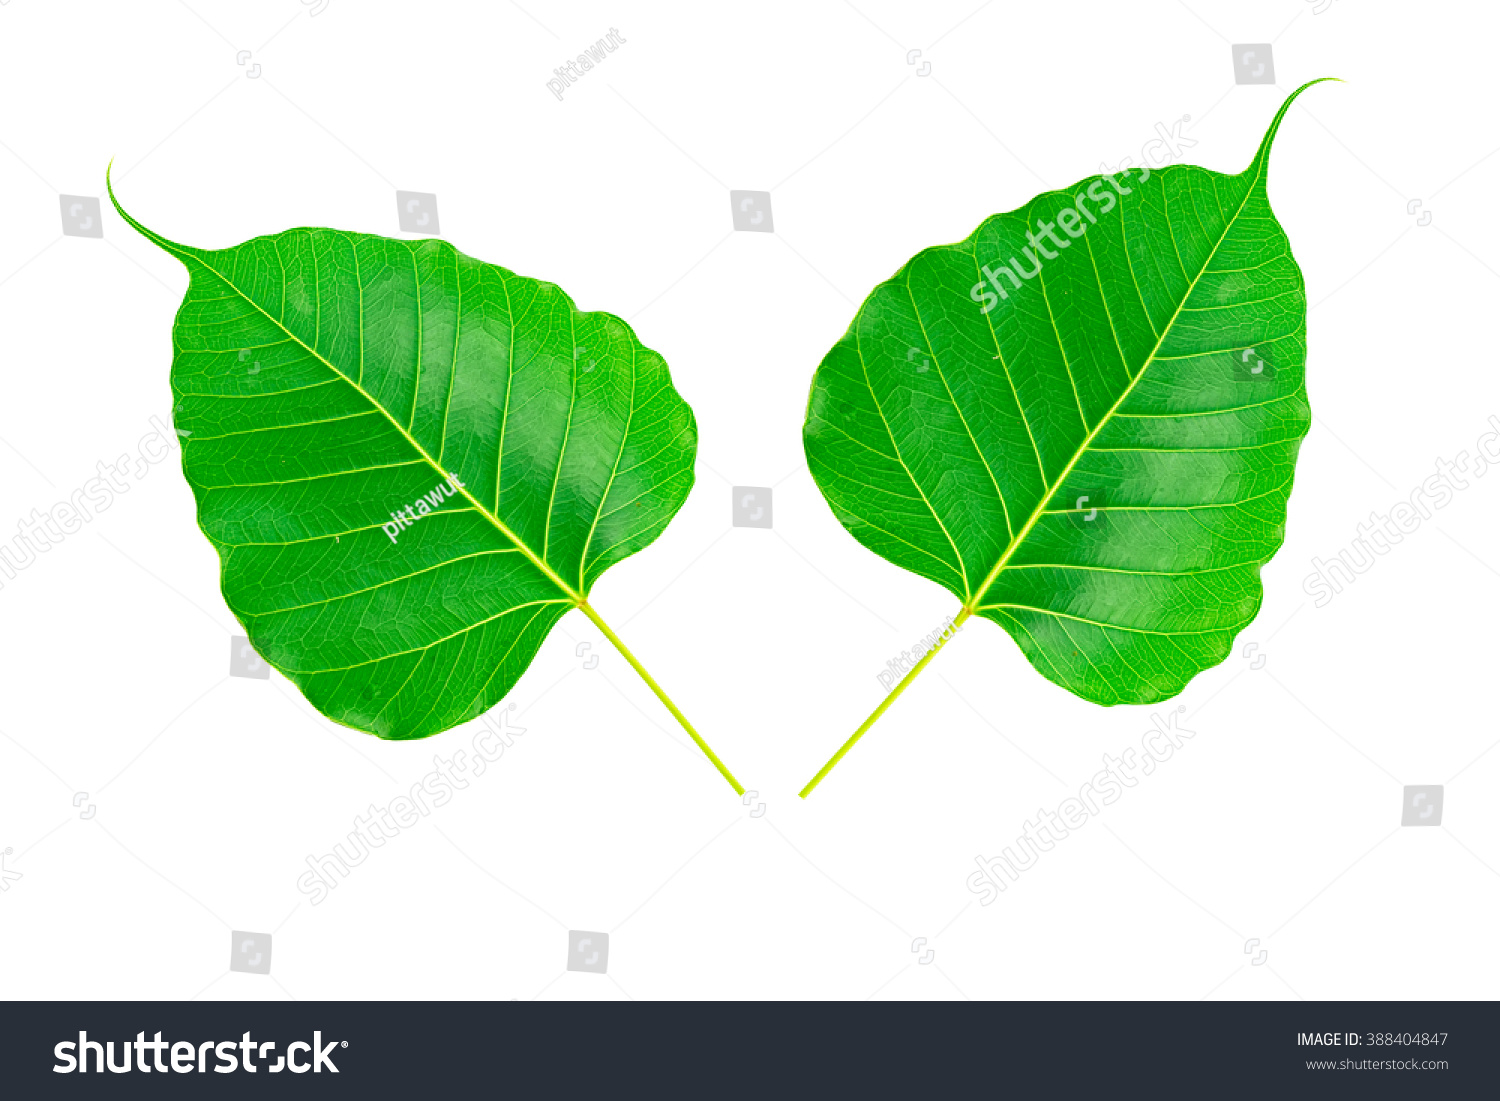 double sacred fig leaf ficus religiosa stock photo 388404847